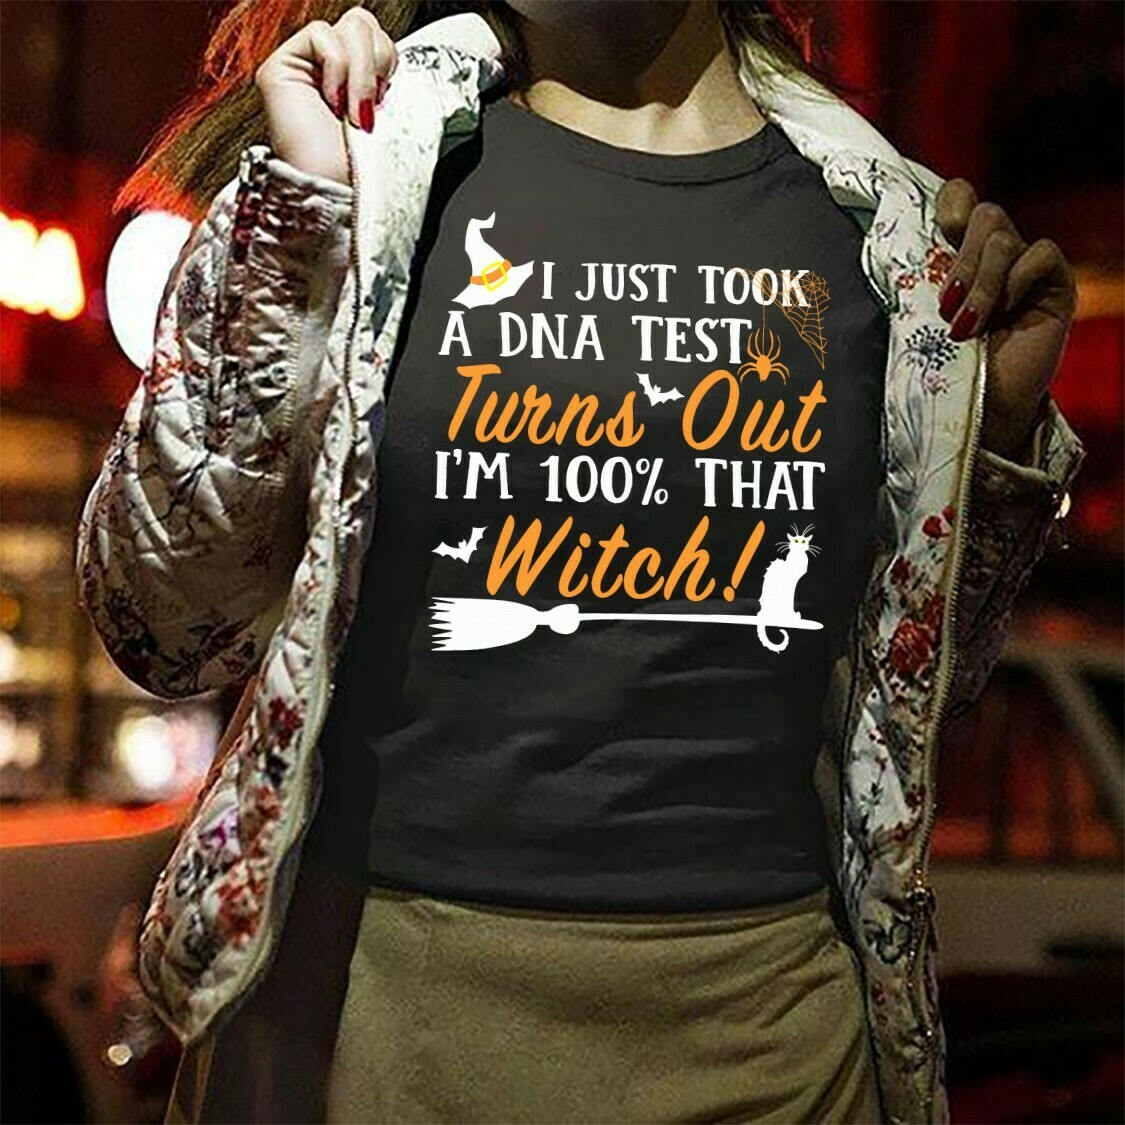 I Just Took A DNA Test Turns Out I'm 100% That Witch Funny Hocus Pocus Bad Girls On Halloween day Family Vacation Party T shirt Long Sleeve Sweatshirt Hoodie Jolly Family Gifts